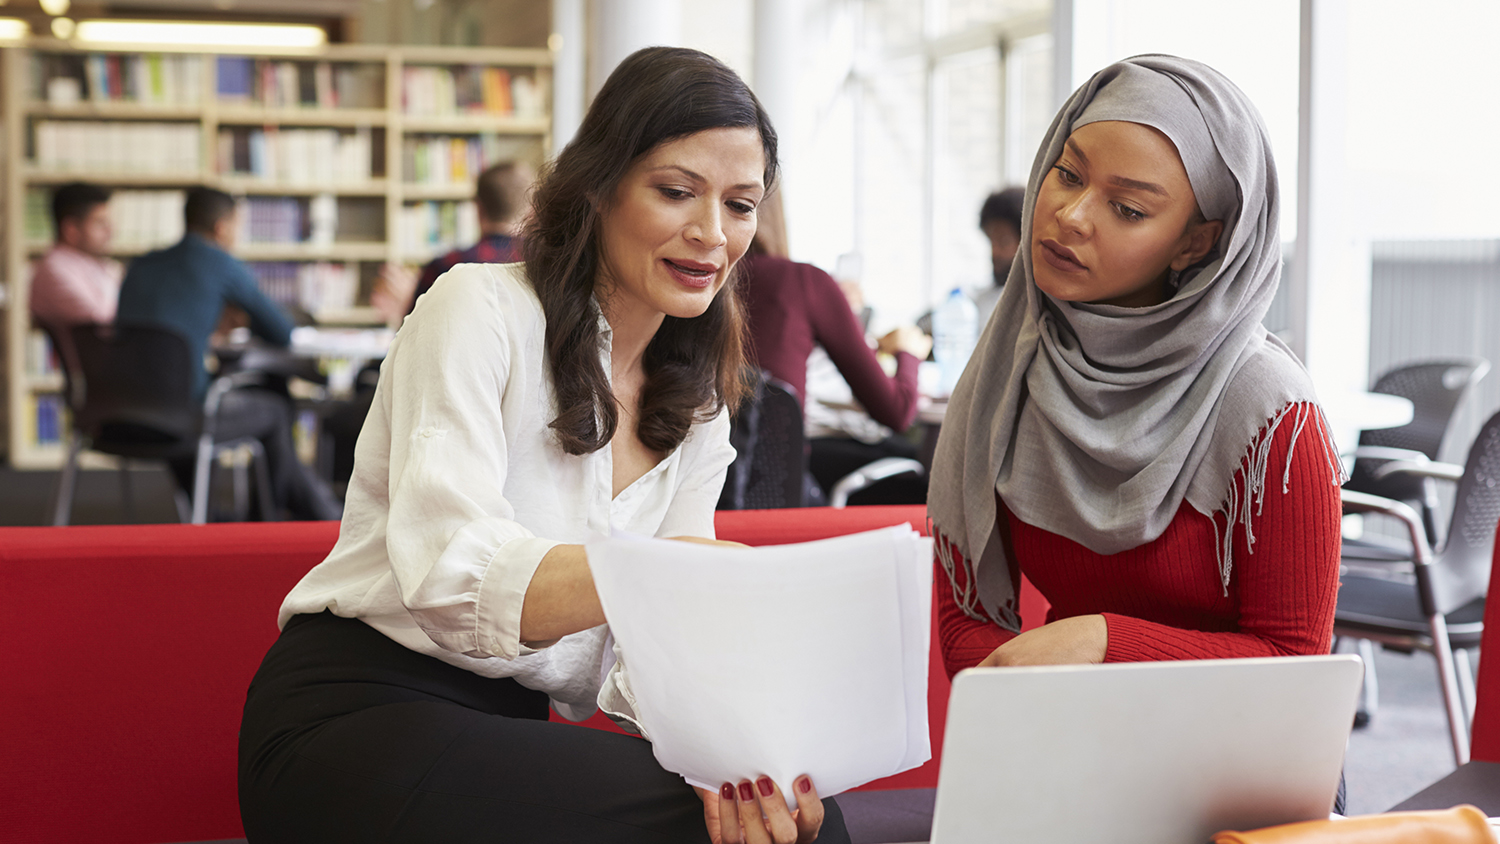 Photo of a faculty member reviewing documents with a female student